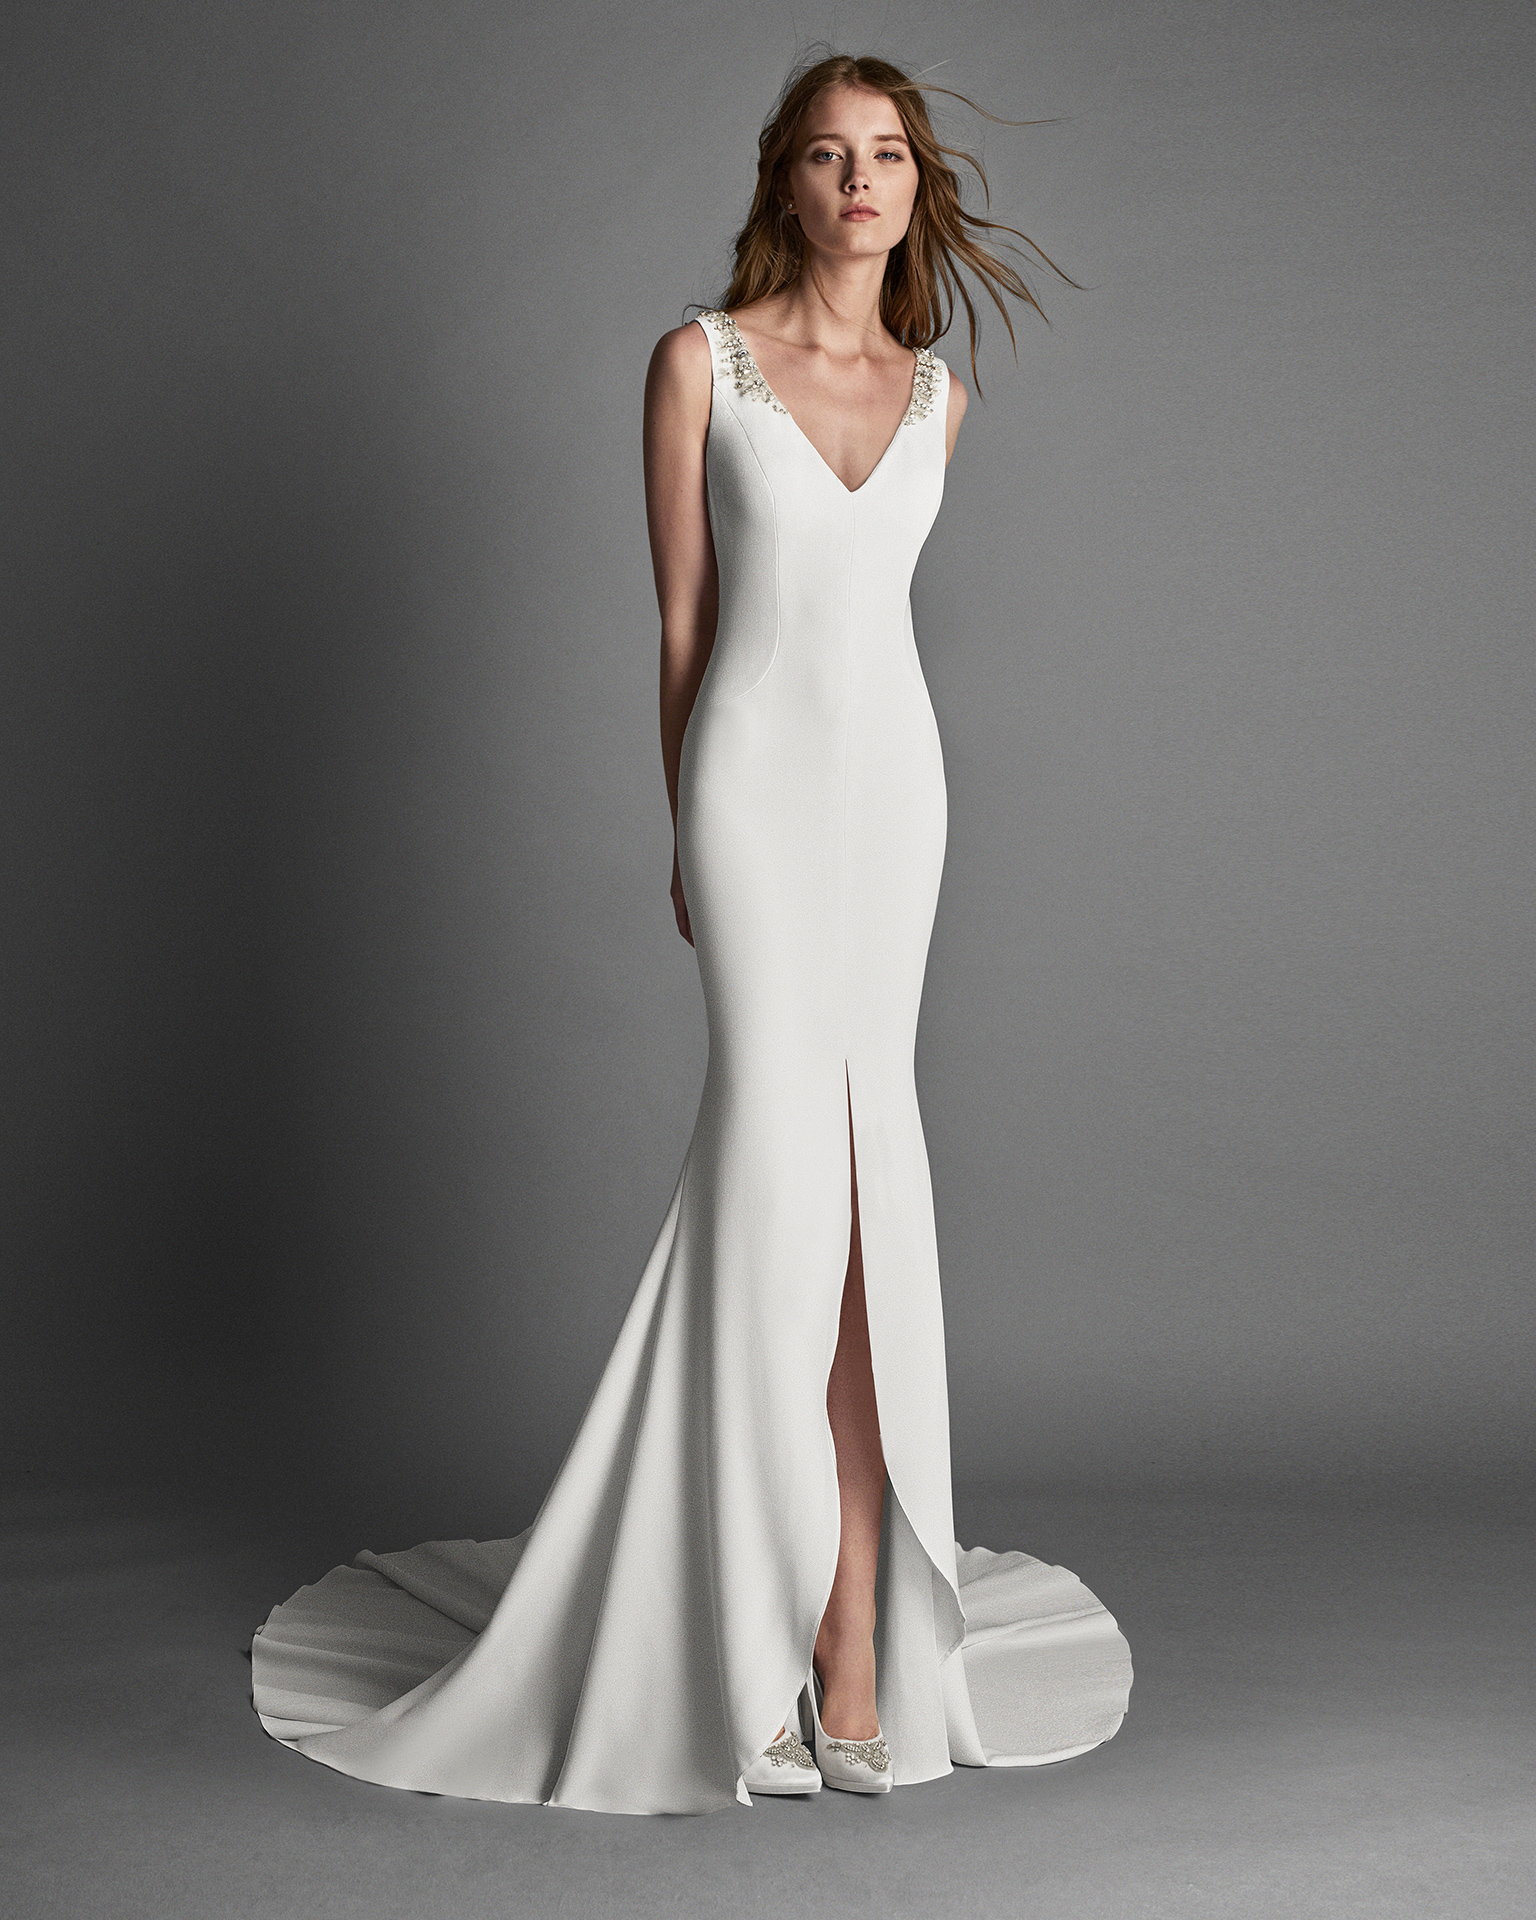 Mermaid-style crepe wedding dress with front opening and crystal flowers on back.